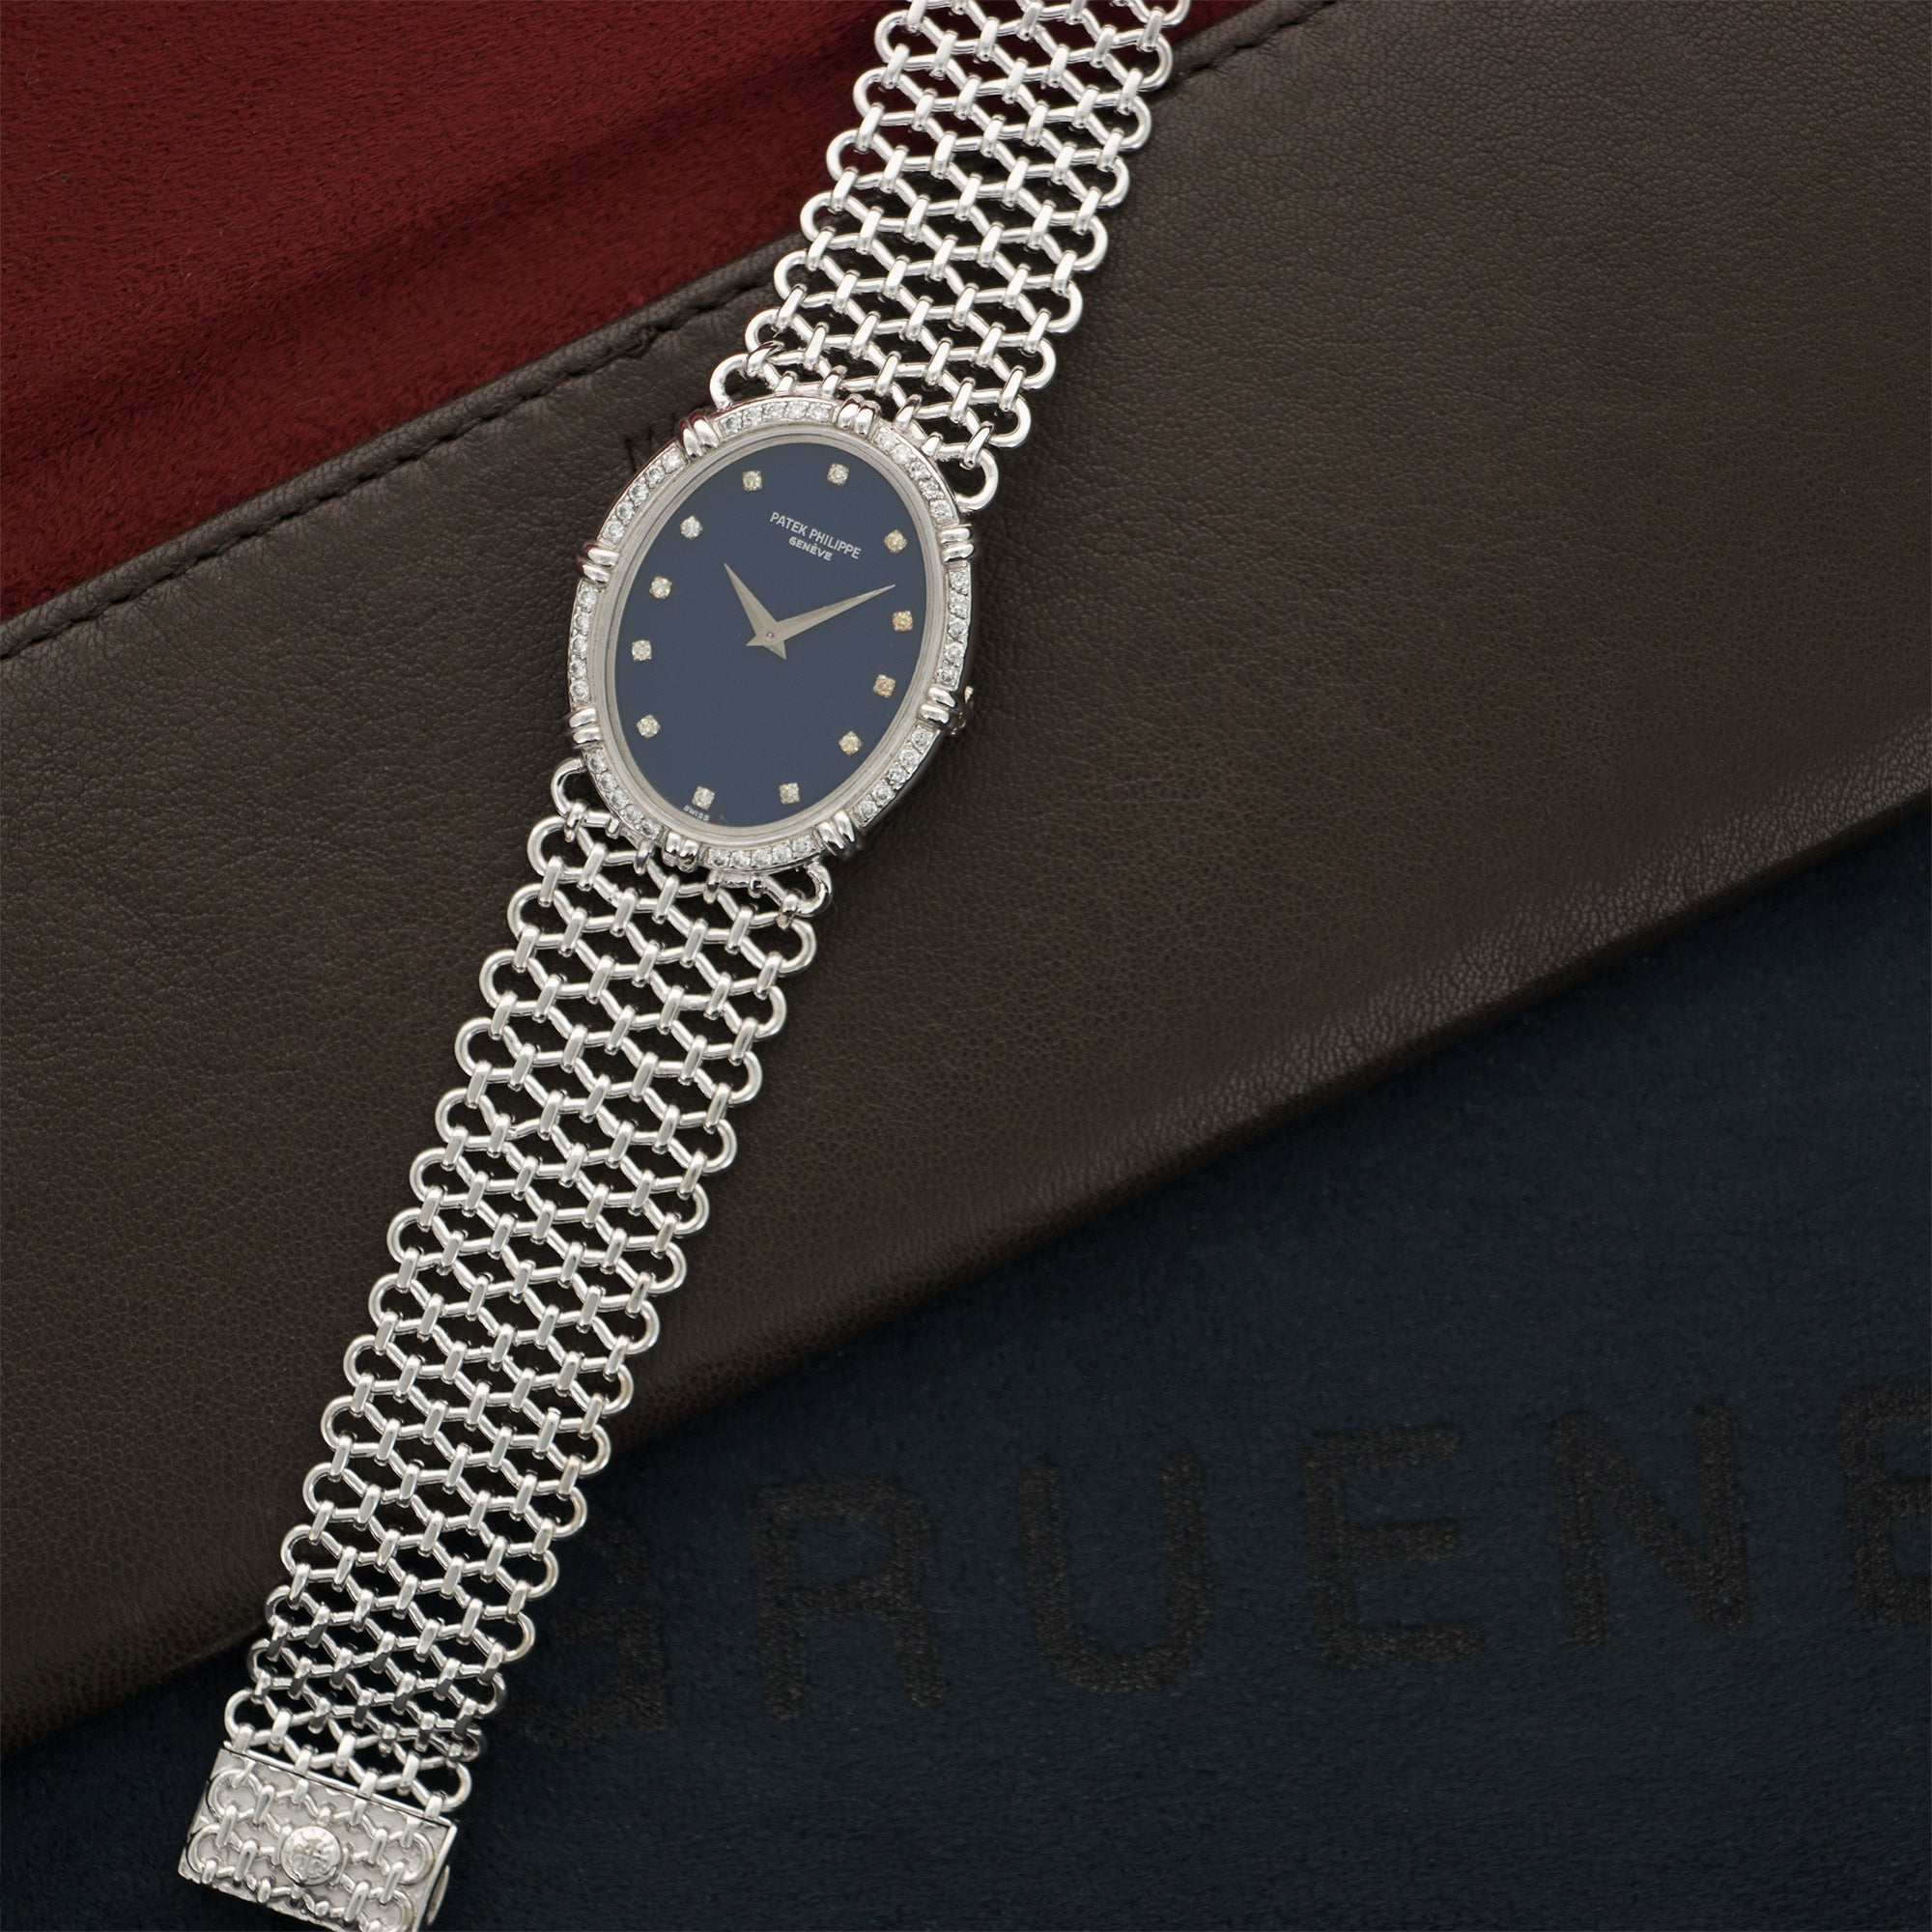 Patek Philippe Vintage 4286 18k WG  Excellent Ladies 18k WG Blue with Diamonds 27mm X 33mm Manual 1970s White Gold Diamonds (180mm) N/A